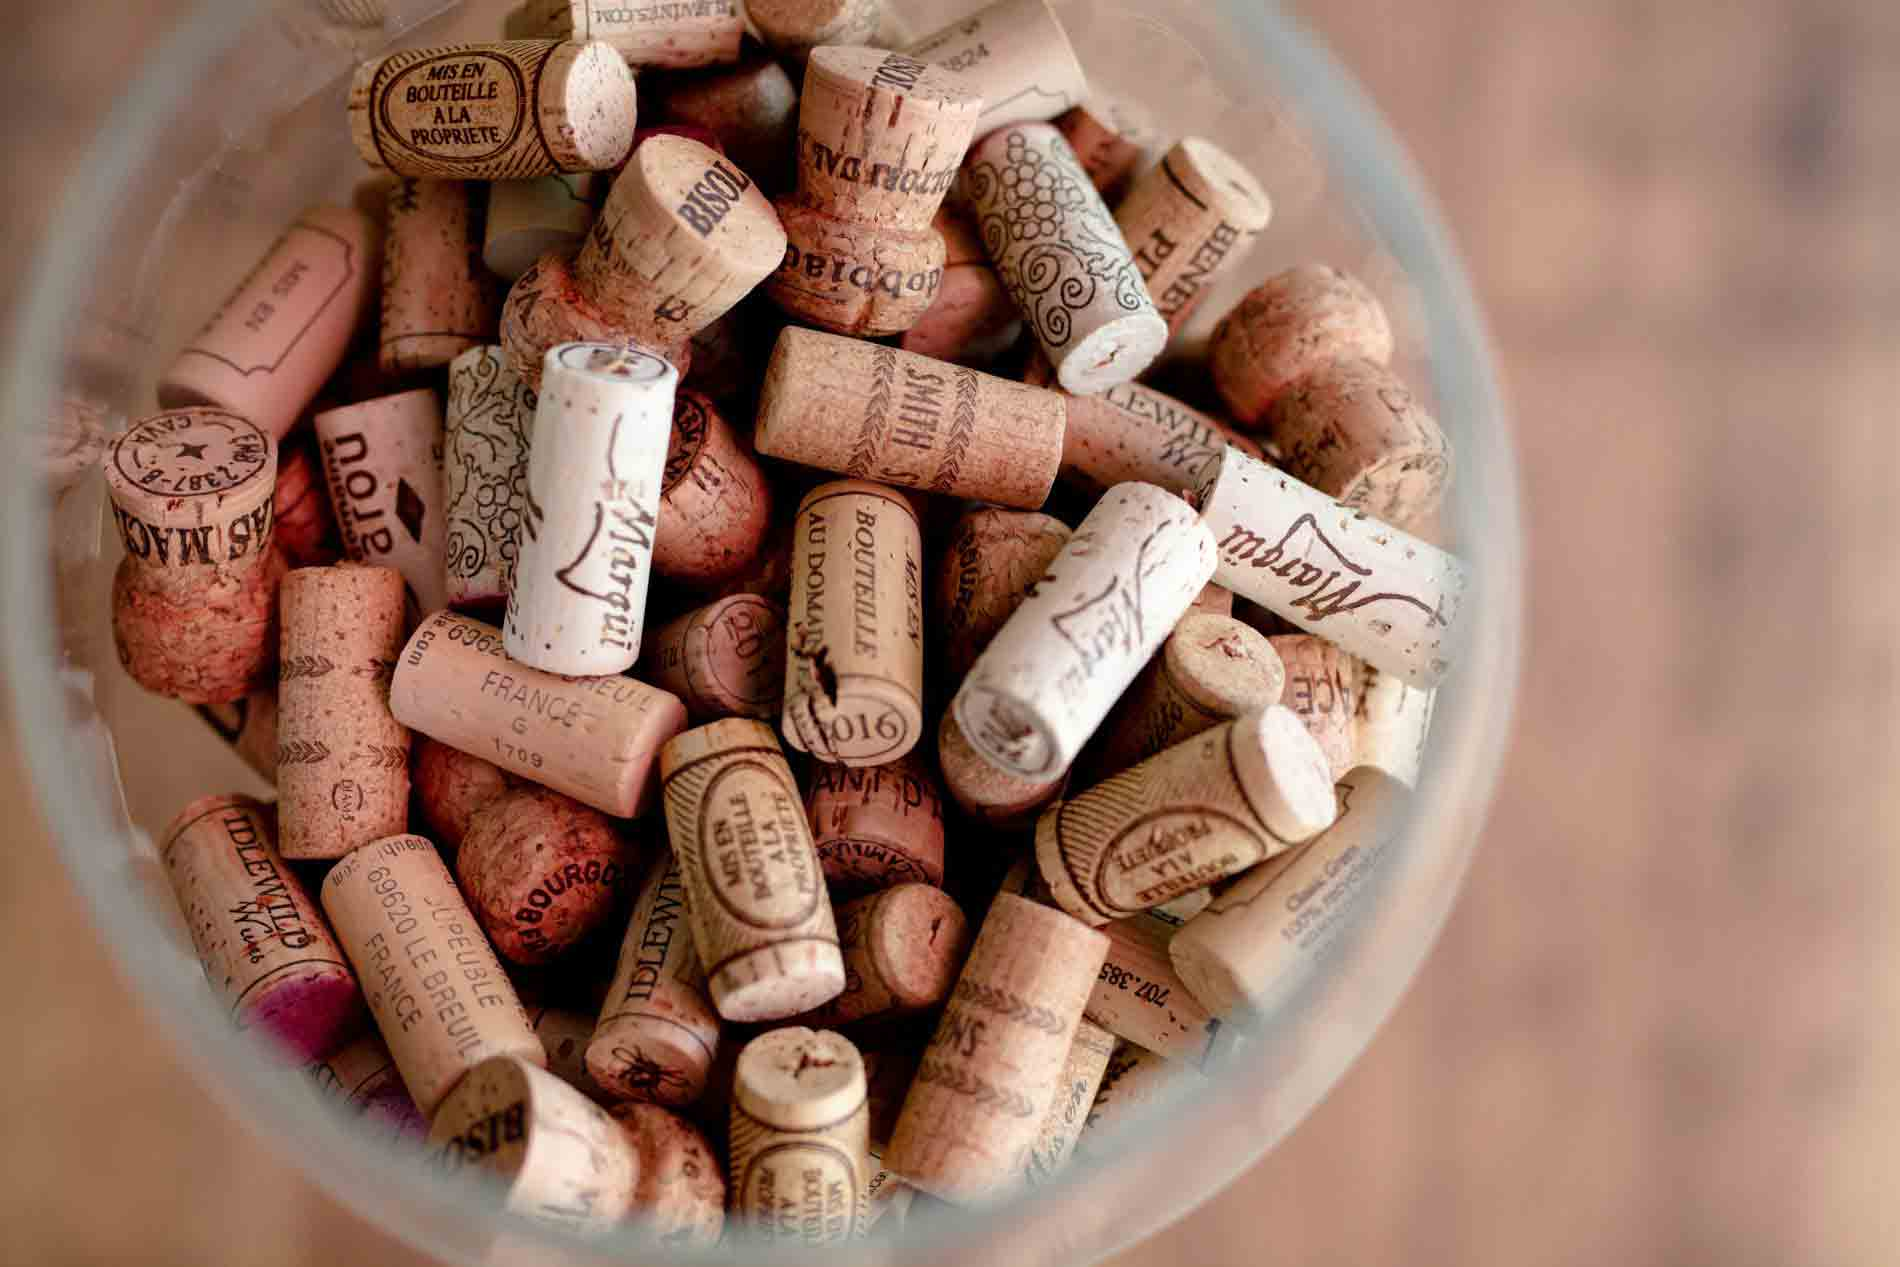 The Best Wine Stores in Denver, CO